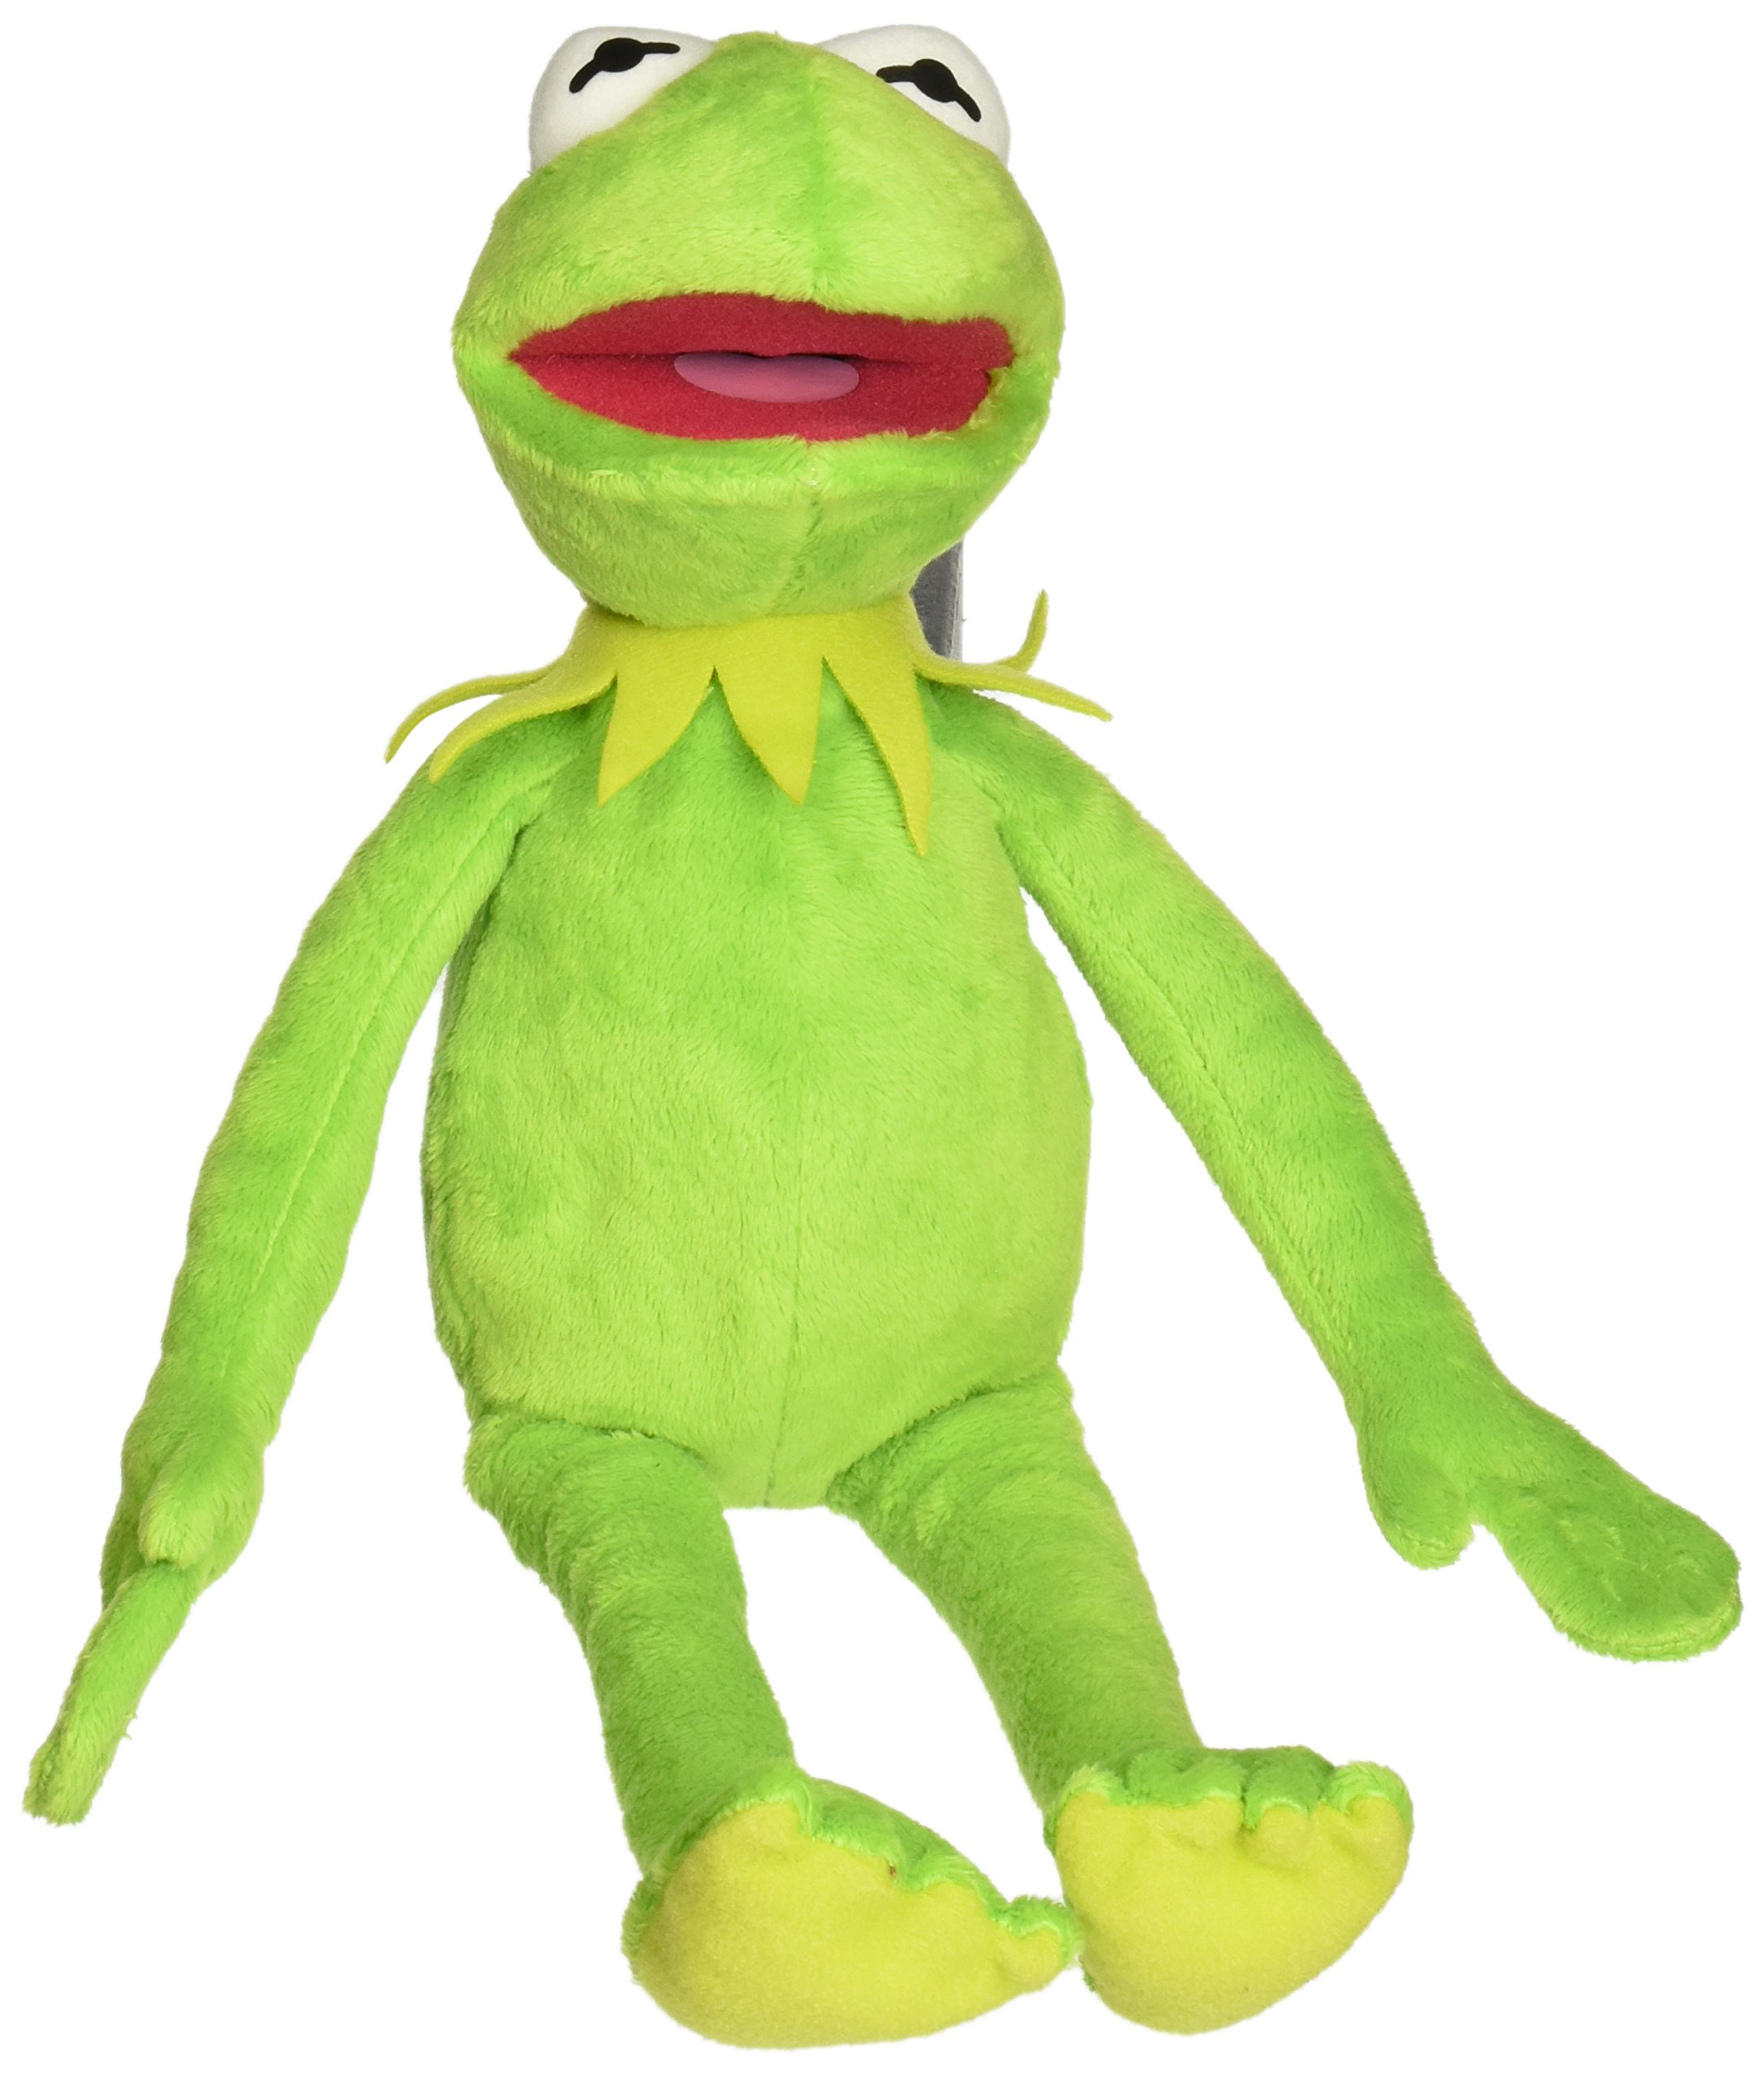 fa02850a690 Get Quotations · Ty Beanie Buddies Kermit Frog Plush